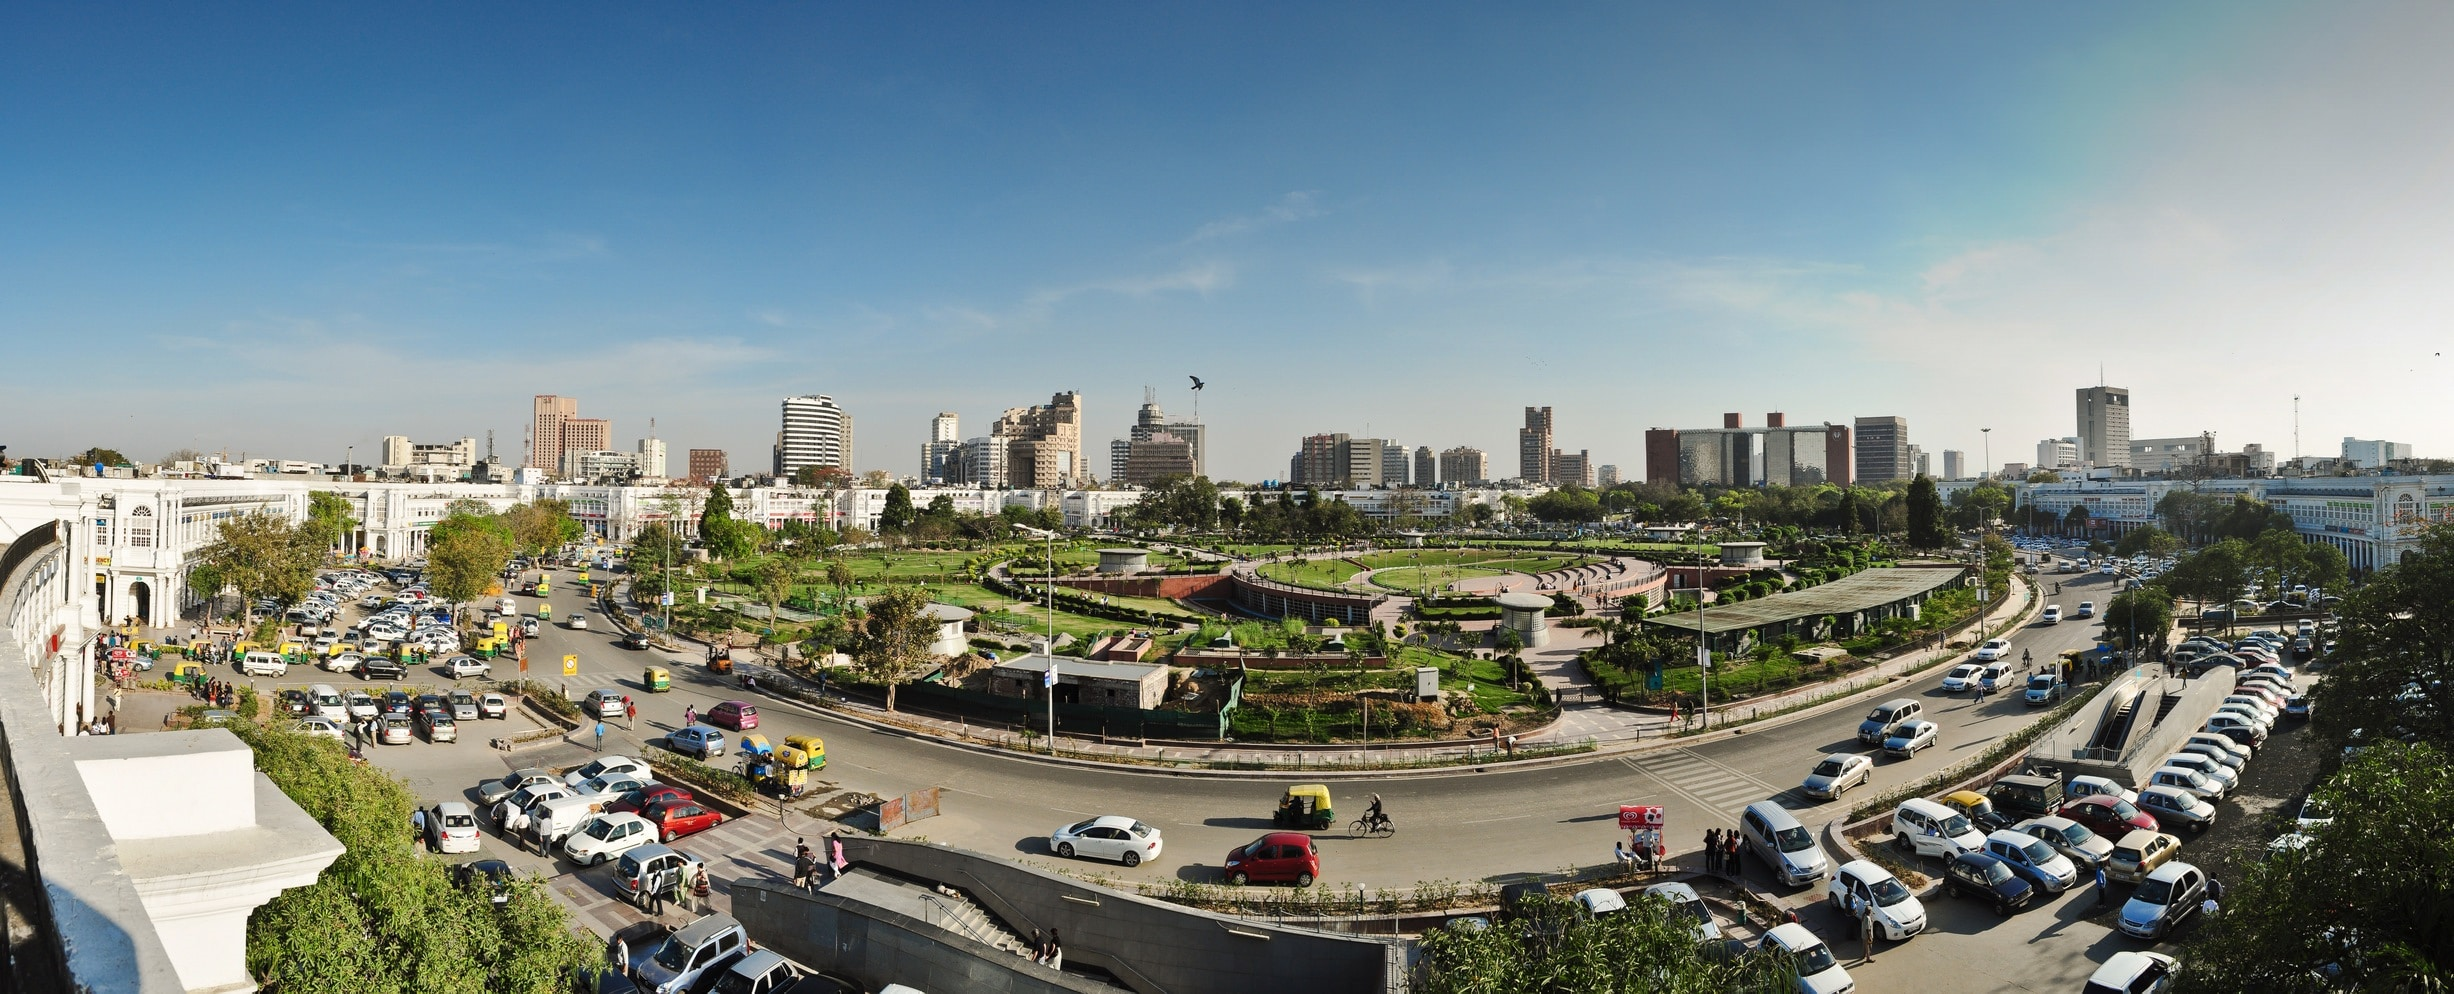 Connaught Place in Delhi is an important economic hub of the National Capital Region